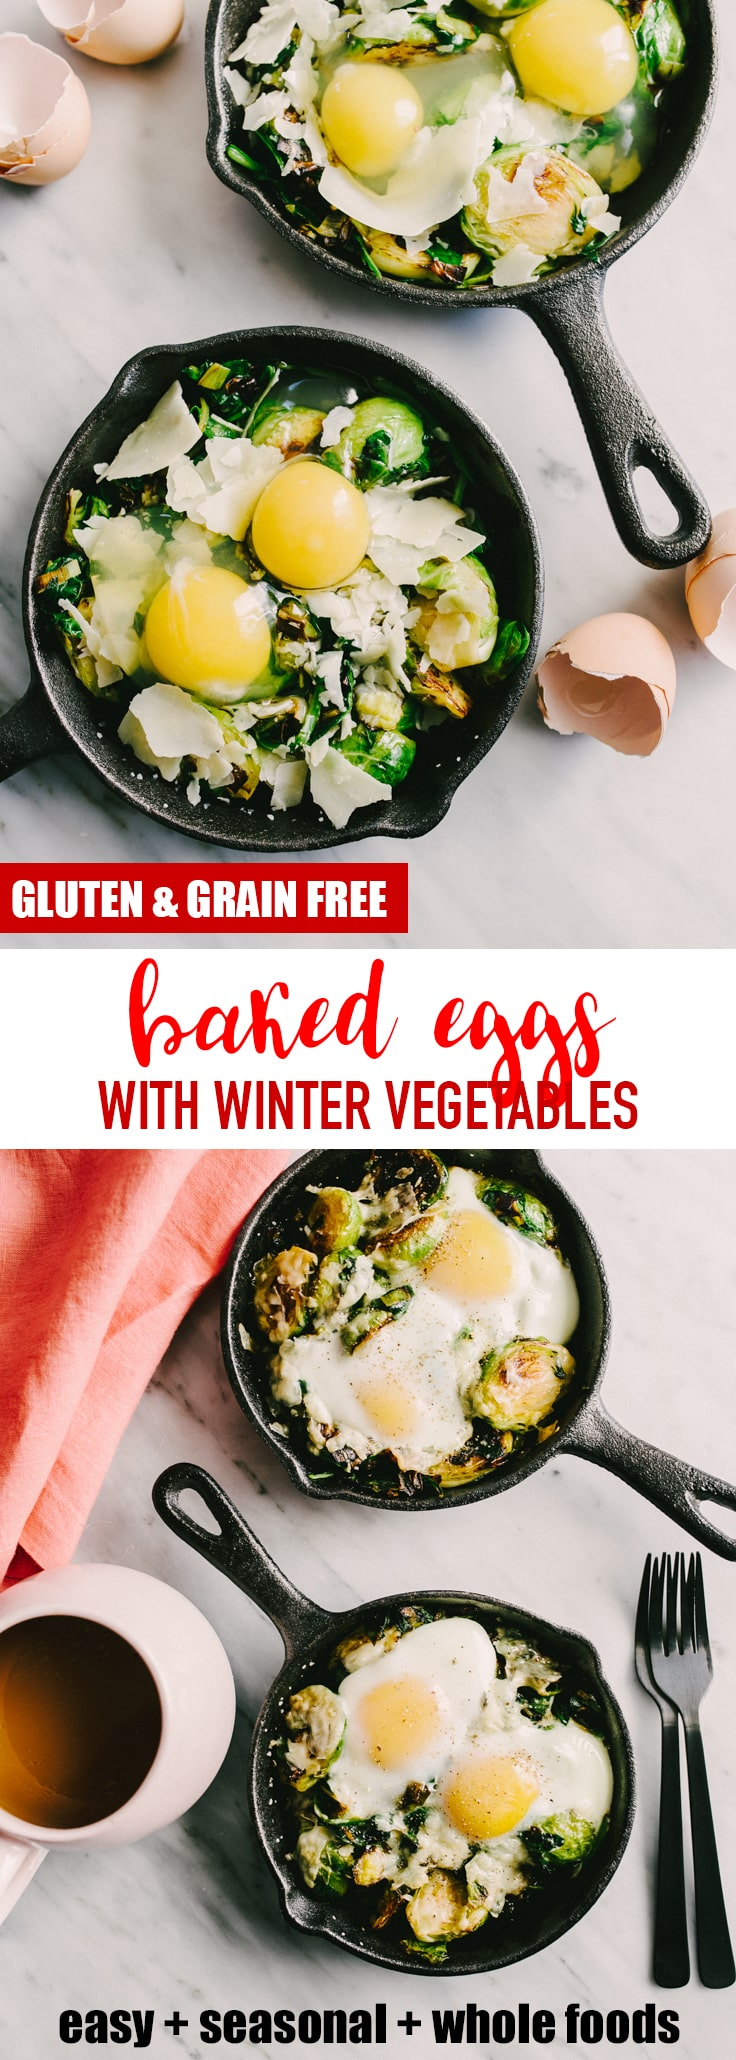 I love an easy and fast hot breakfast, especially one with fresh vegetables. This easy recipe for baked eggs with winter vegetables is perfect for cold winter mornings. With a little weekend prep, this recipe is ready in less than 5 minutes. #breakfast #winter #bakedeggs #brusselssprouts